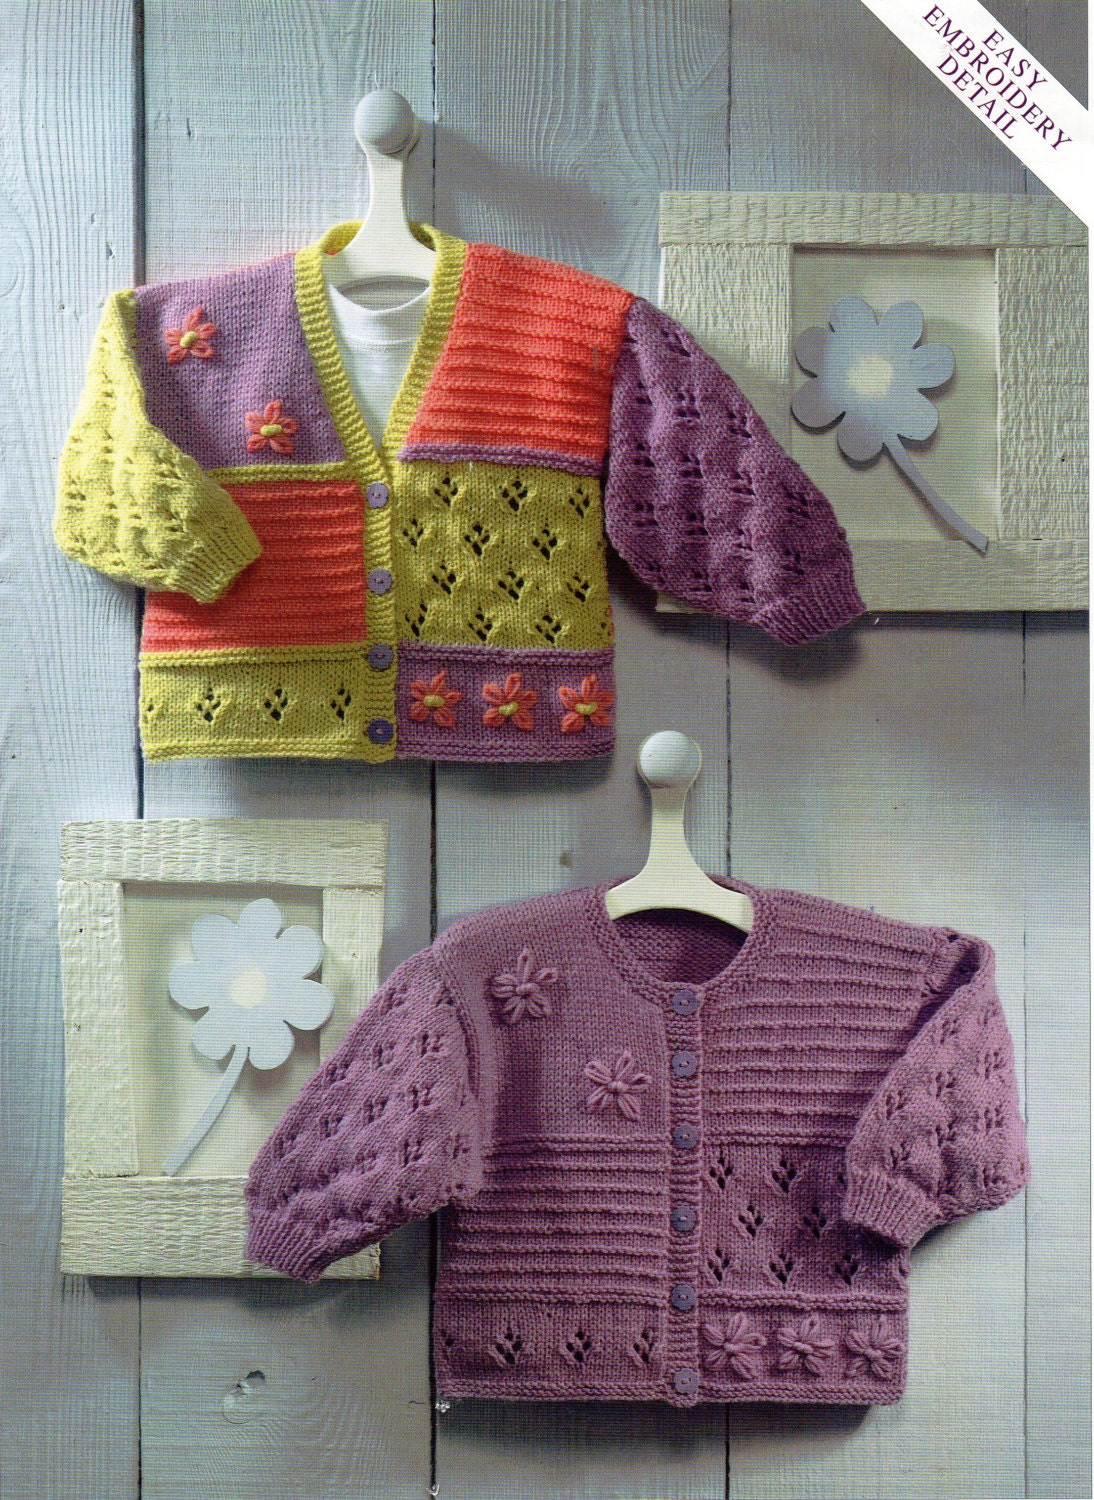 Free Knitting Patterns For Childrens Jackets : baby cardigans knitting pattern baby girls childrens jackets